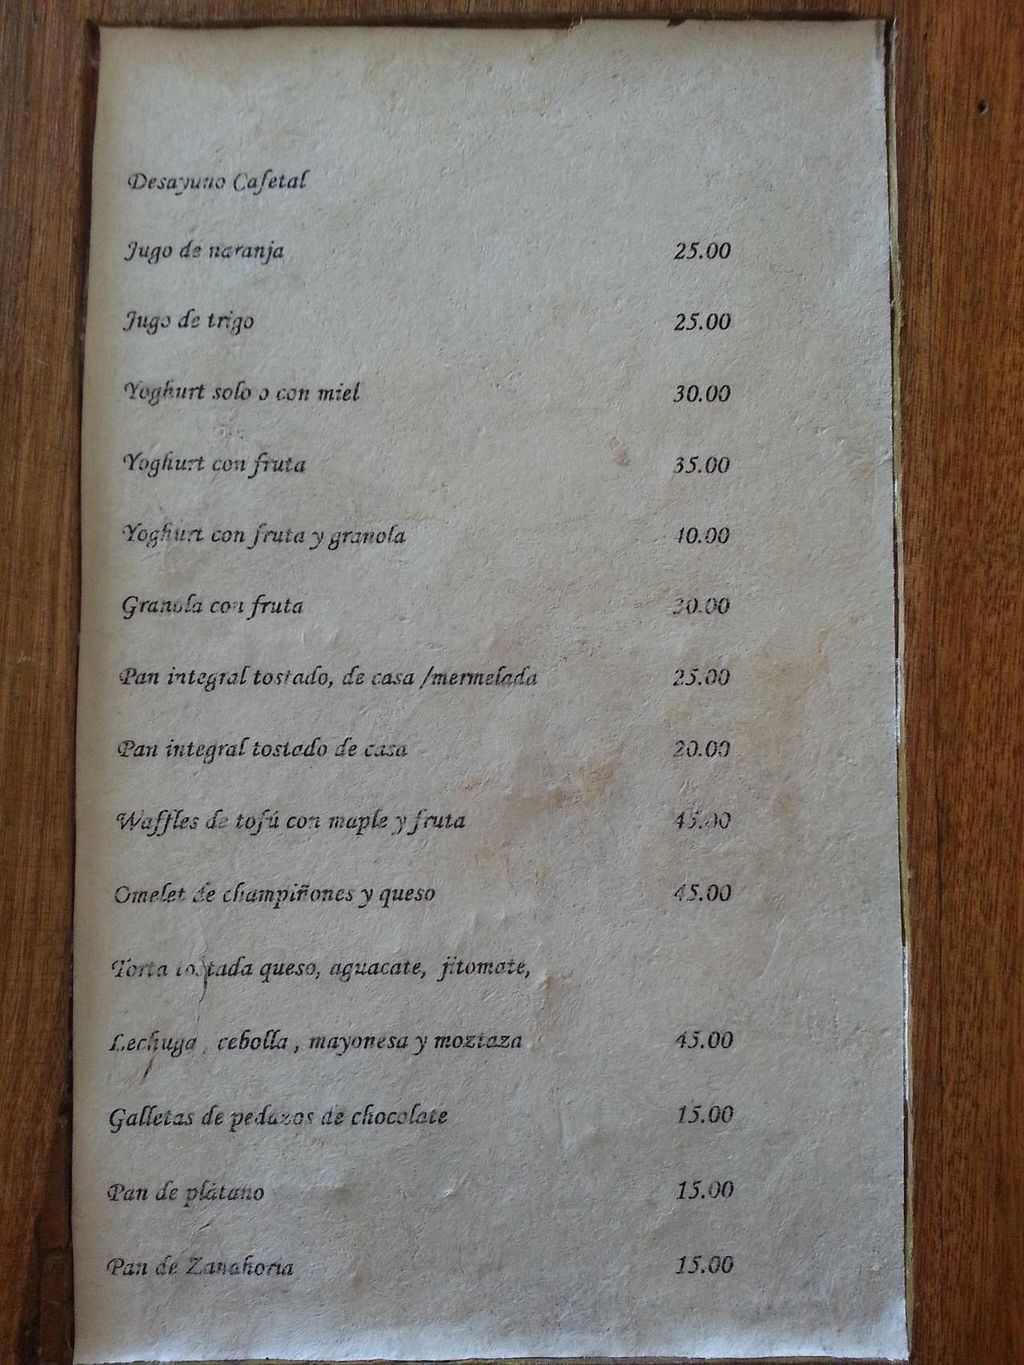 """Photo of CLOSED: El Cafetal  by <a href=""""/members/profile/dougdo"""">dougdo</a> <br/>Food menu. The mushroom omelette with avocado was delicious <br/> January 8, 2014  - <a href='/contact/abuse/image/44554/62137'>Report</a>"""